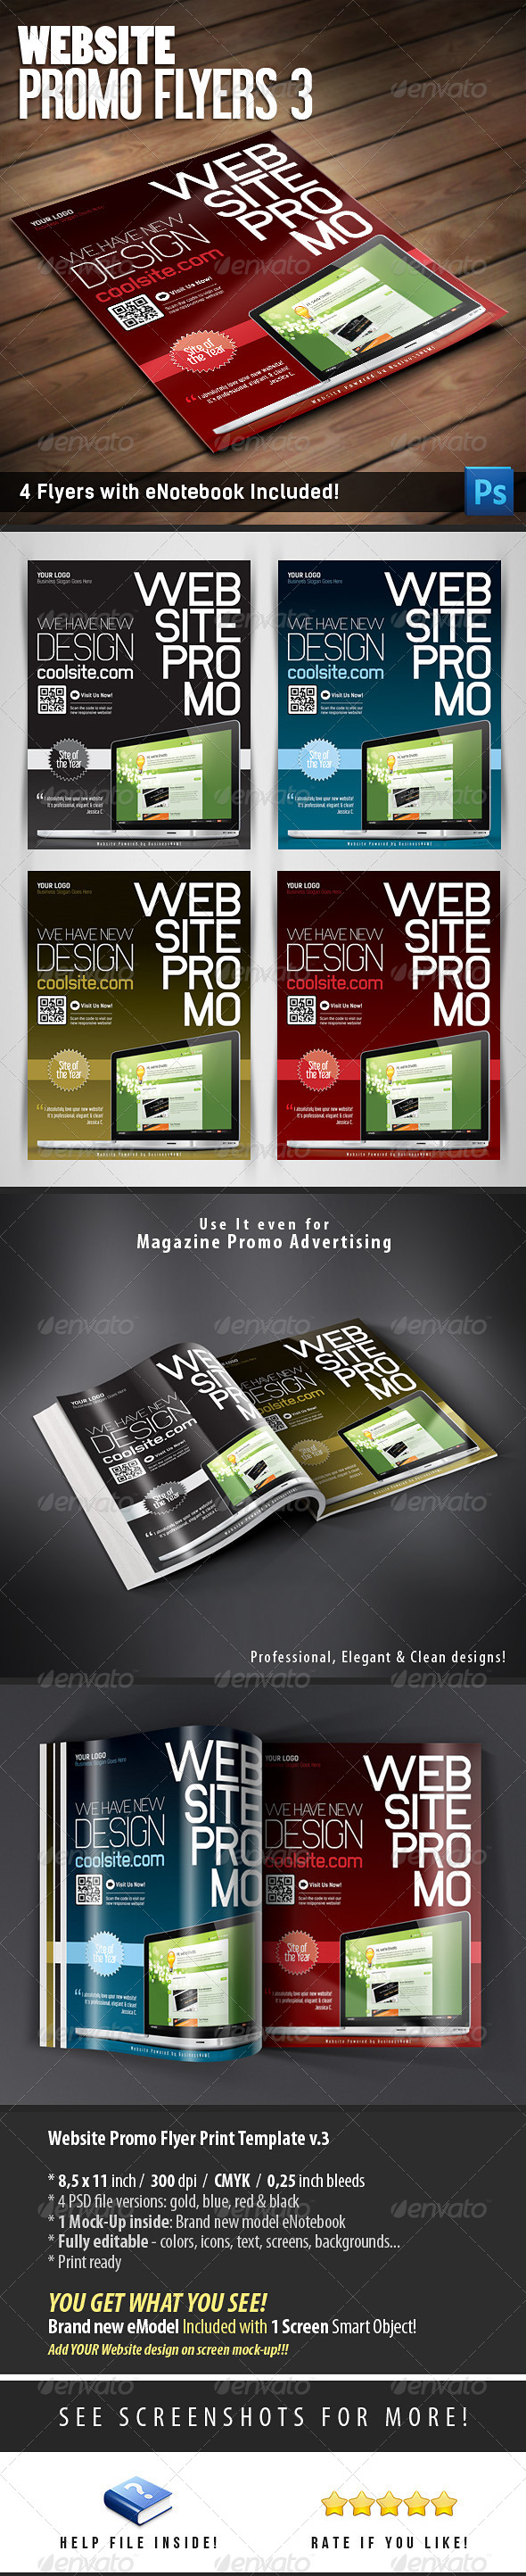 Website Promo Flyers v.3 - Commerce Flyers